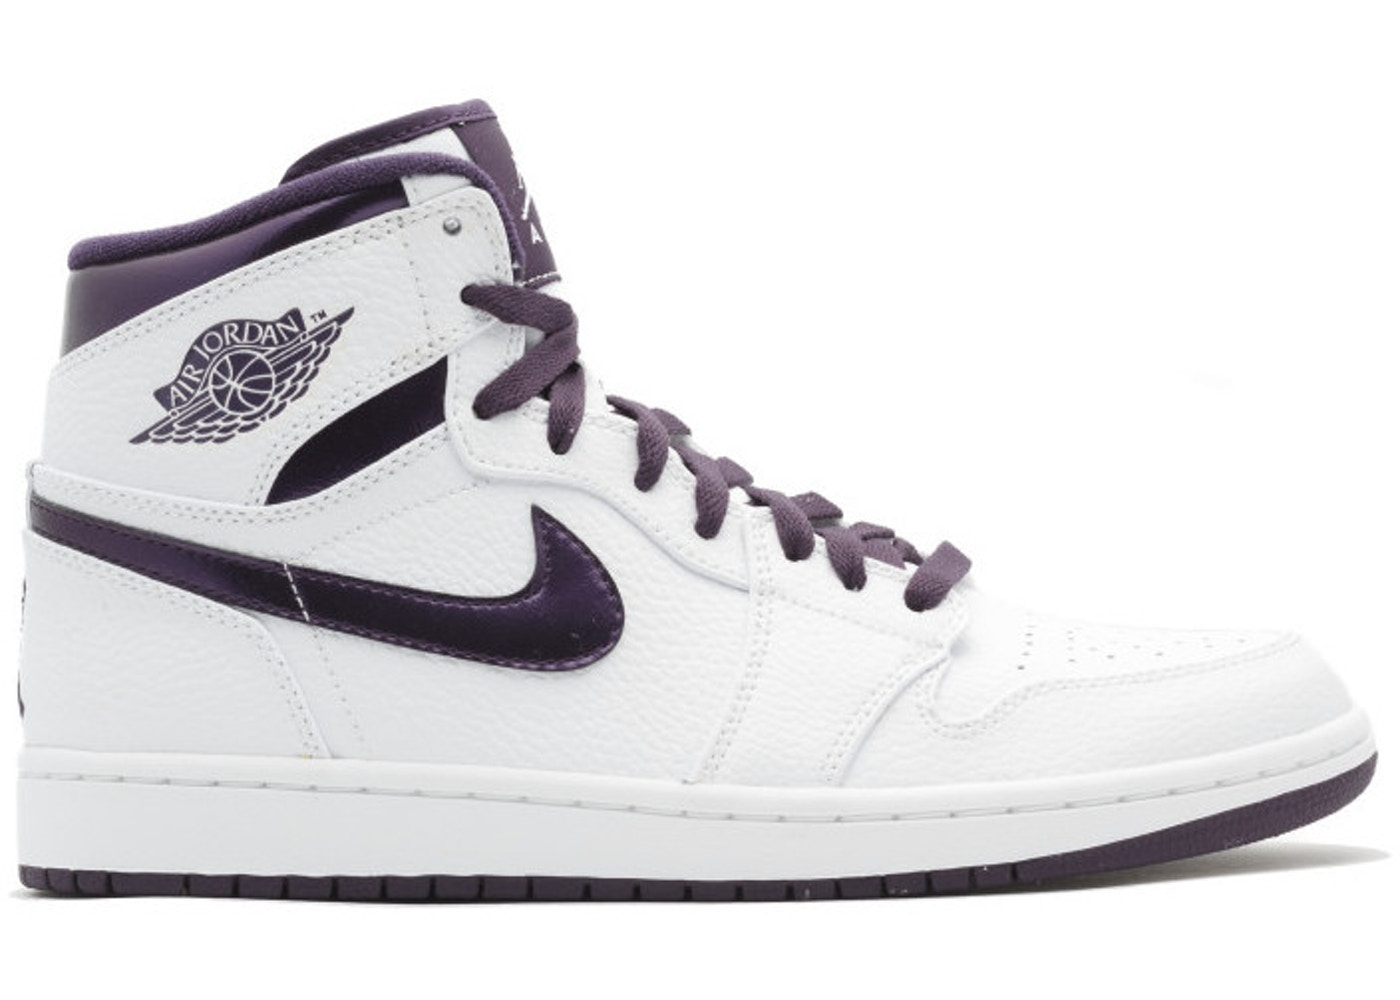 081c16310eee Jordan 1 Retro Grand Purple - 332550-151